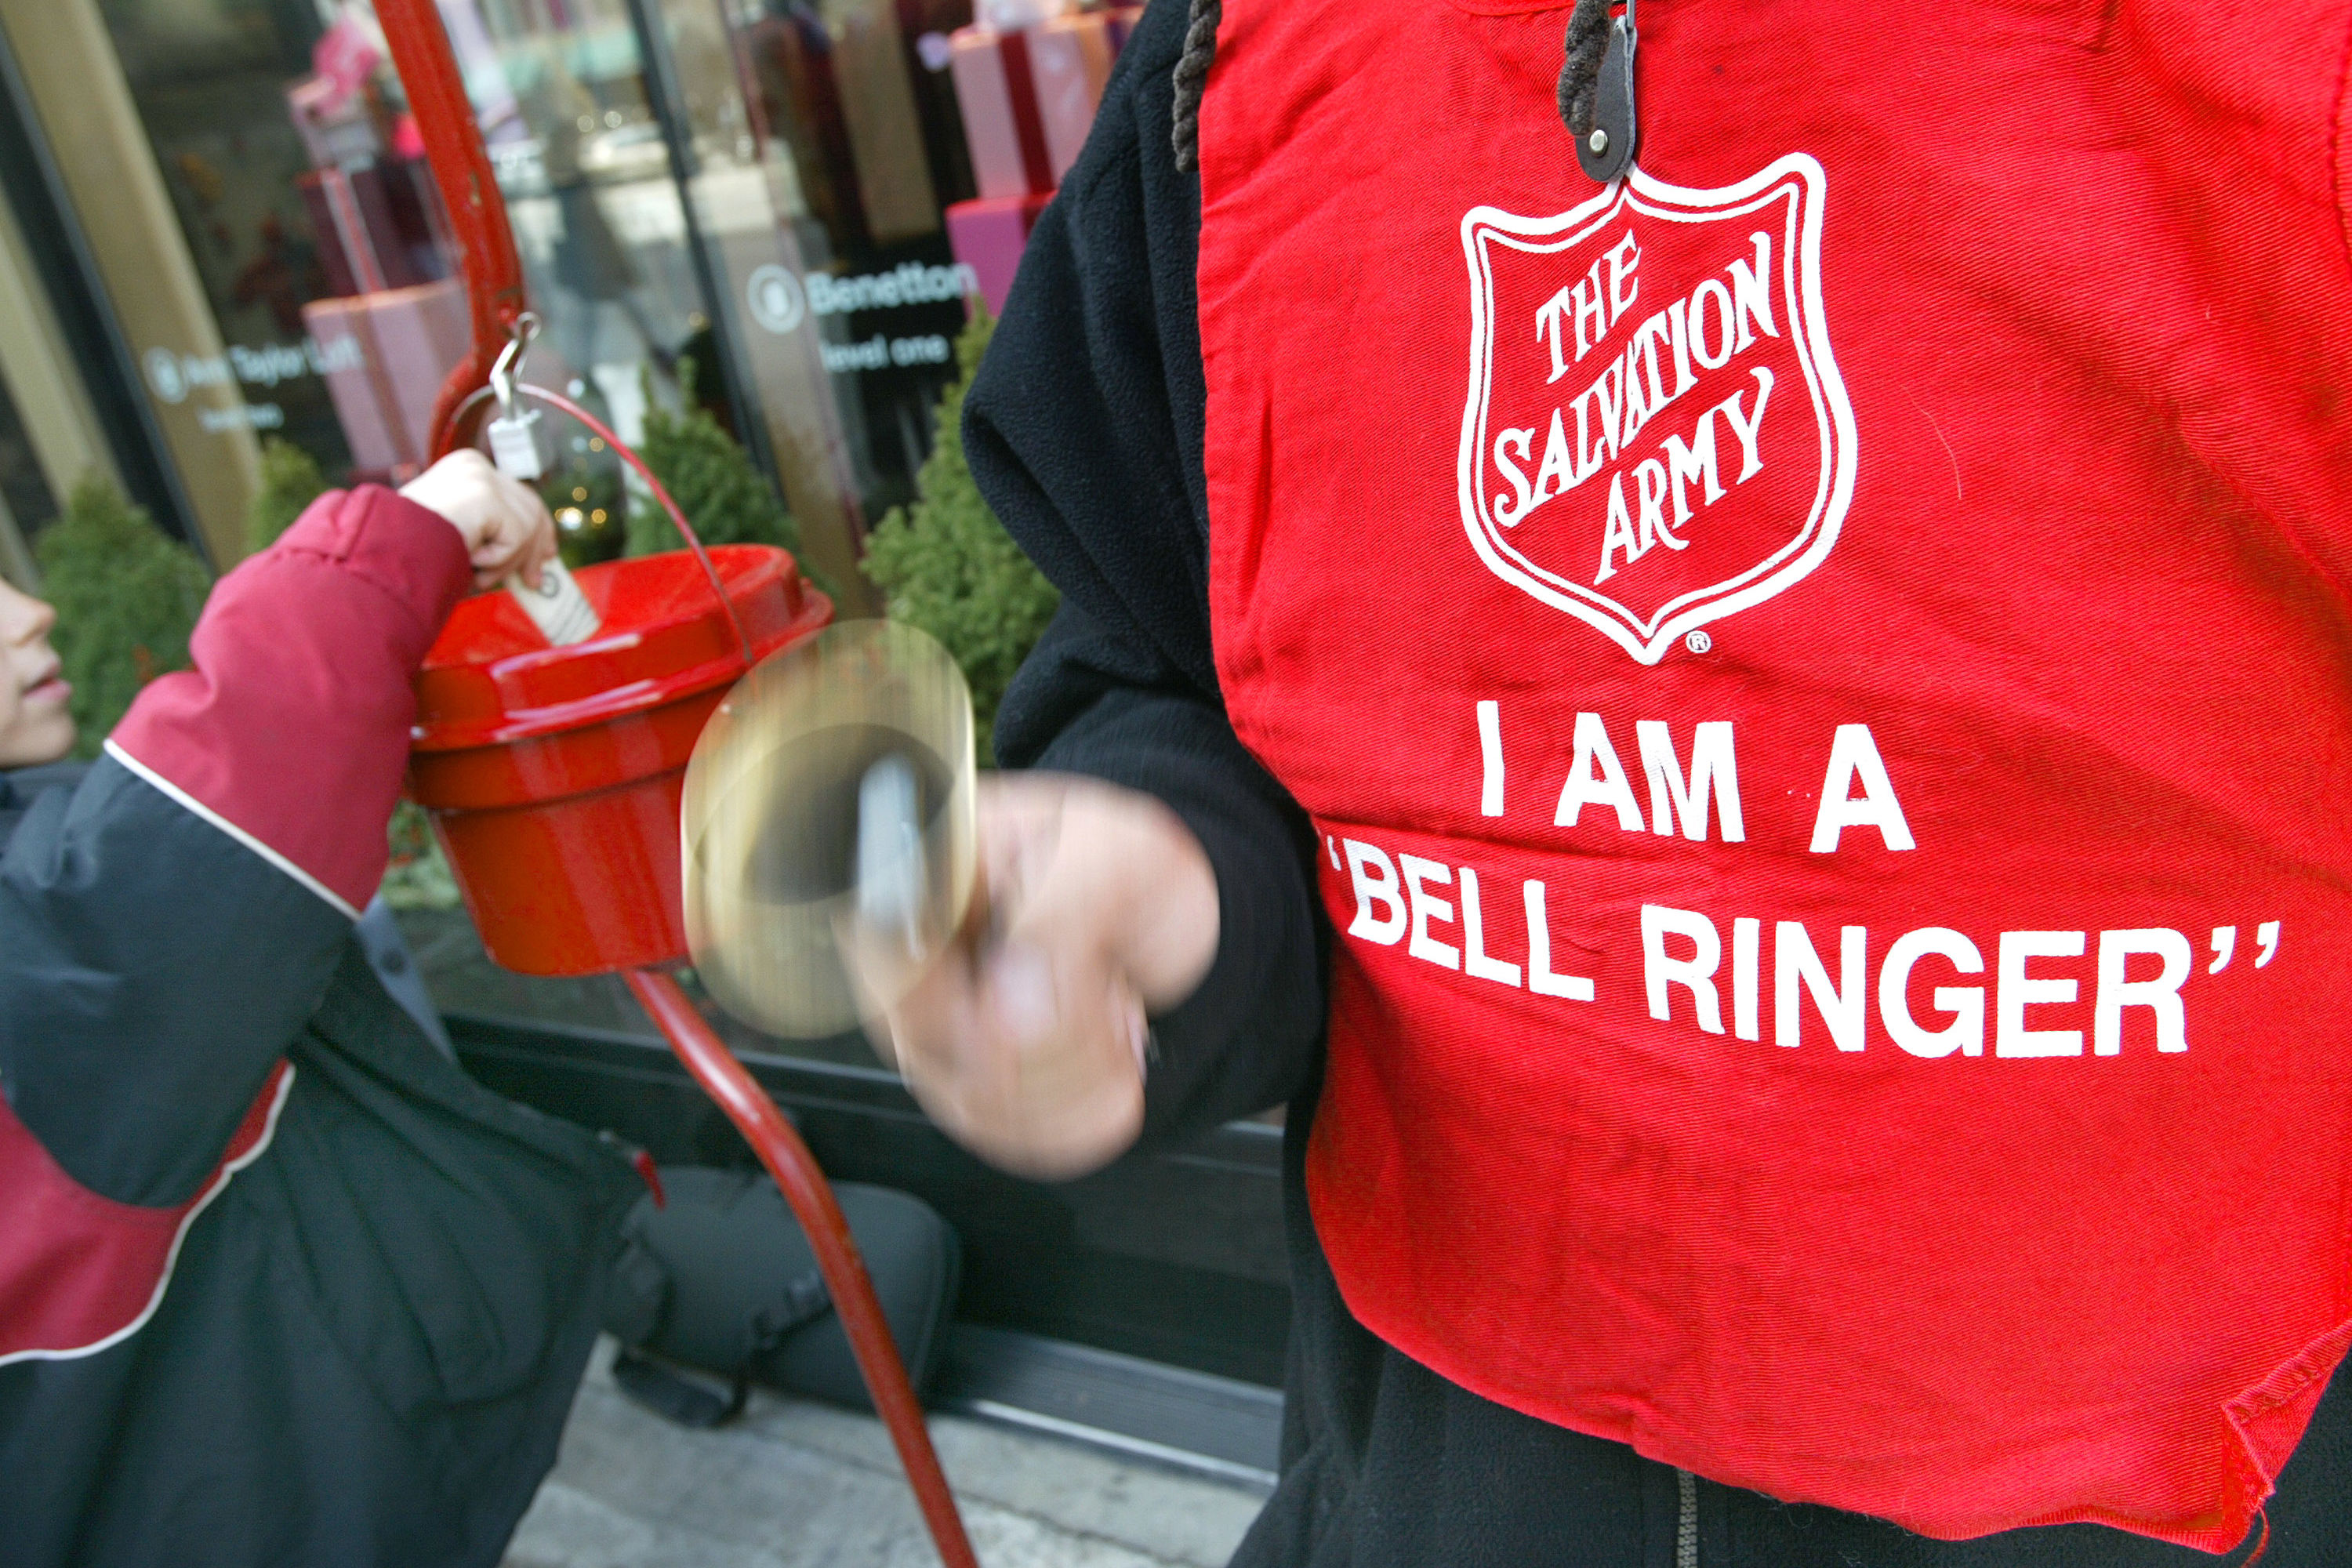 The Salvation Army is Looking for Red Kettle Bell Ringers